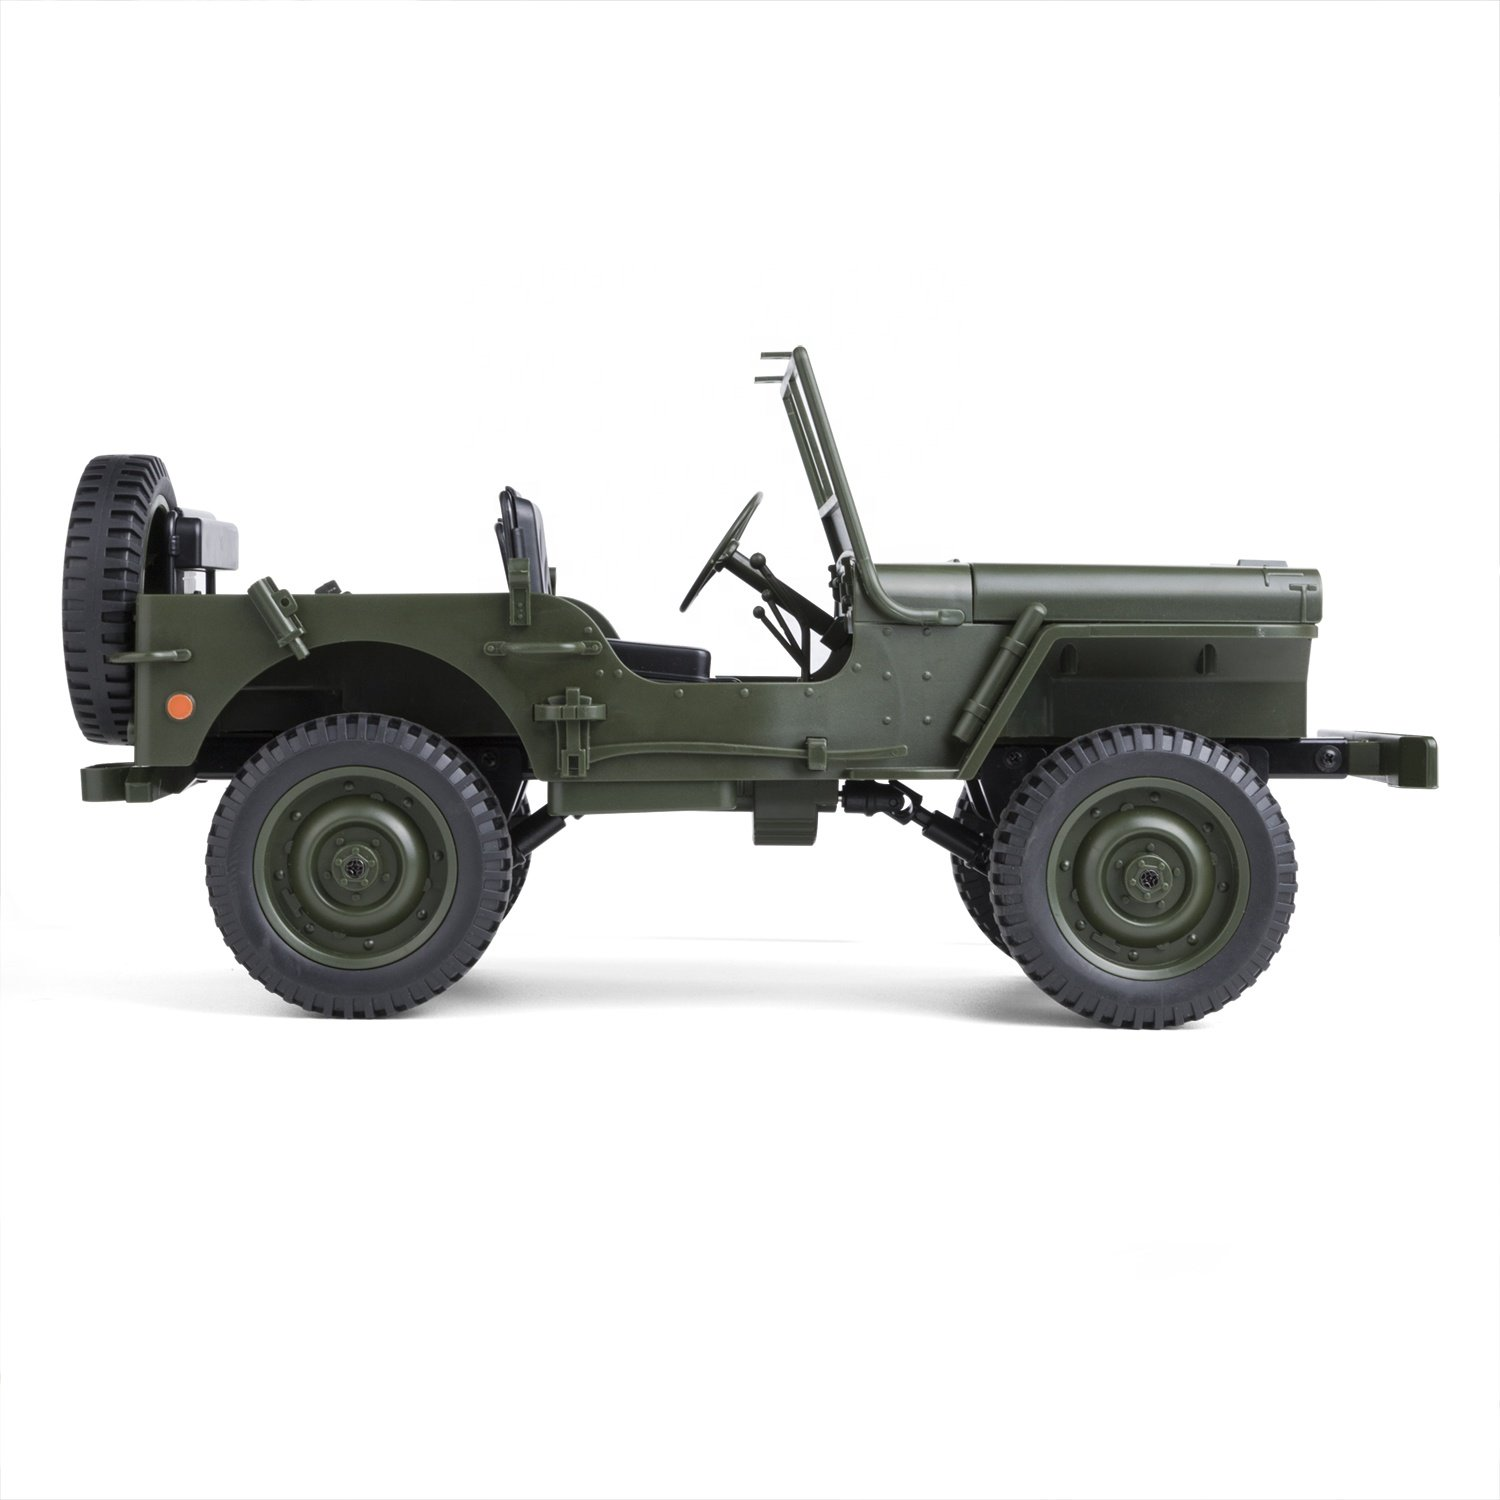 COCHE MILITAR JEEP WILLYS 1/10 RC referencia C606 C606